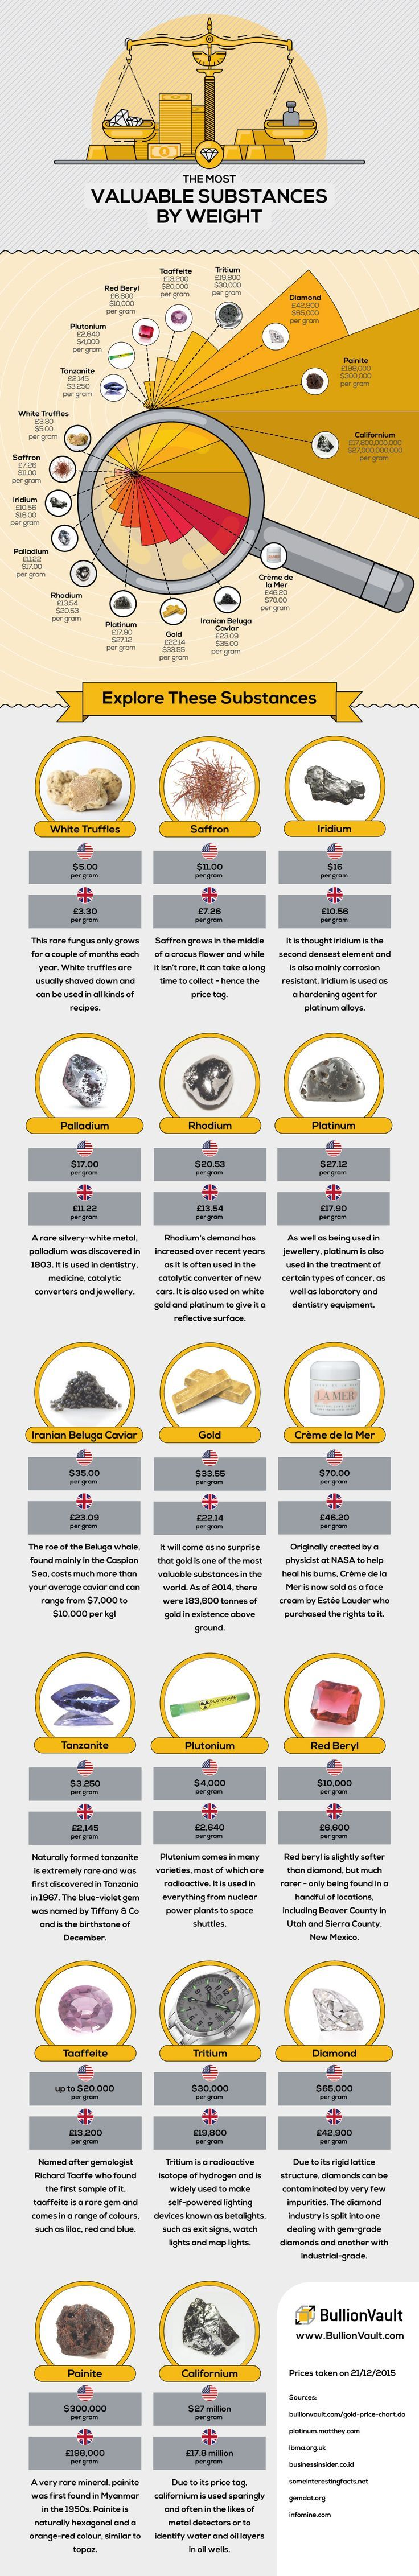 The Most Valuable Substances by Weight #Infographic #Trading #Finance